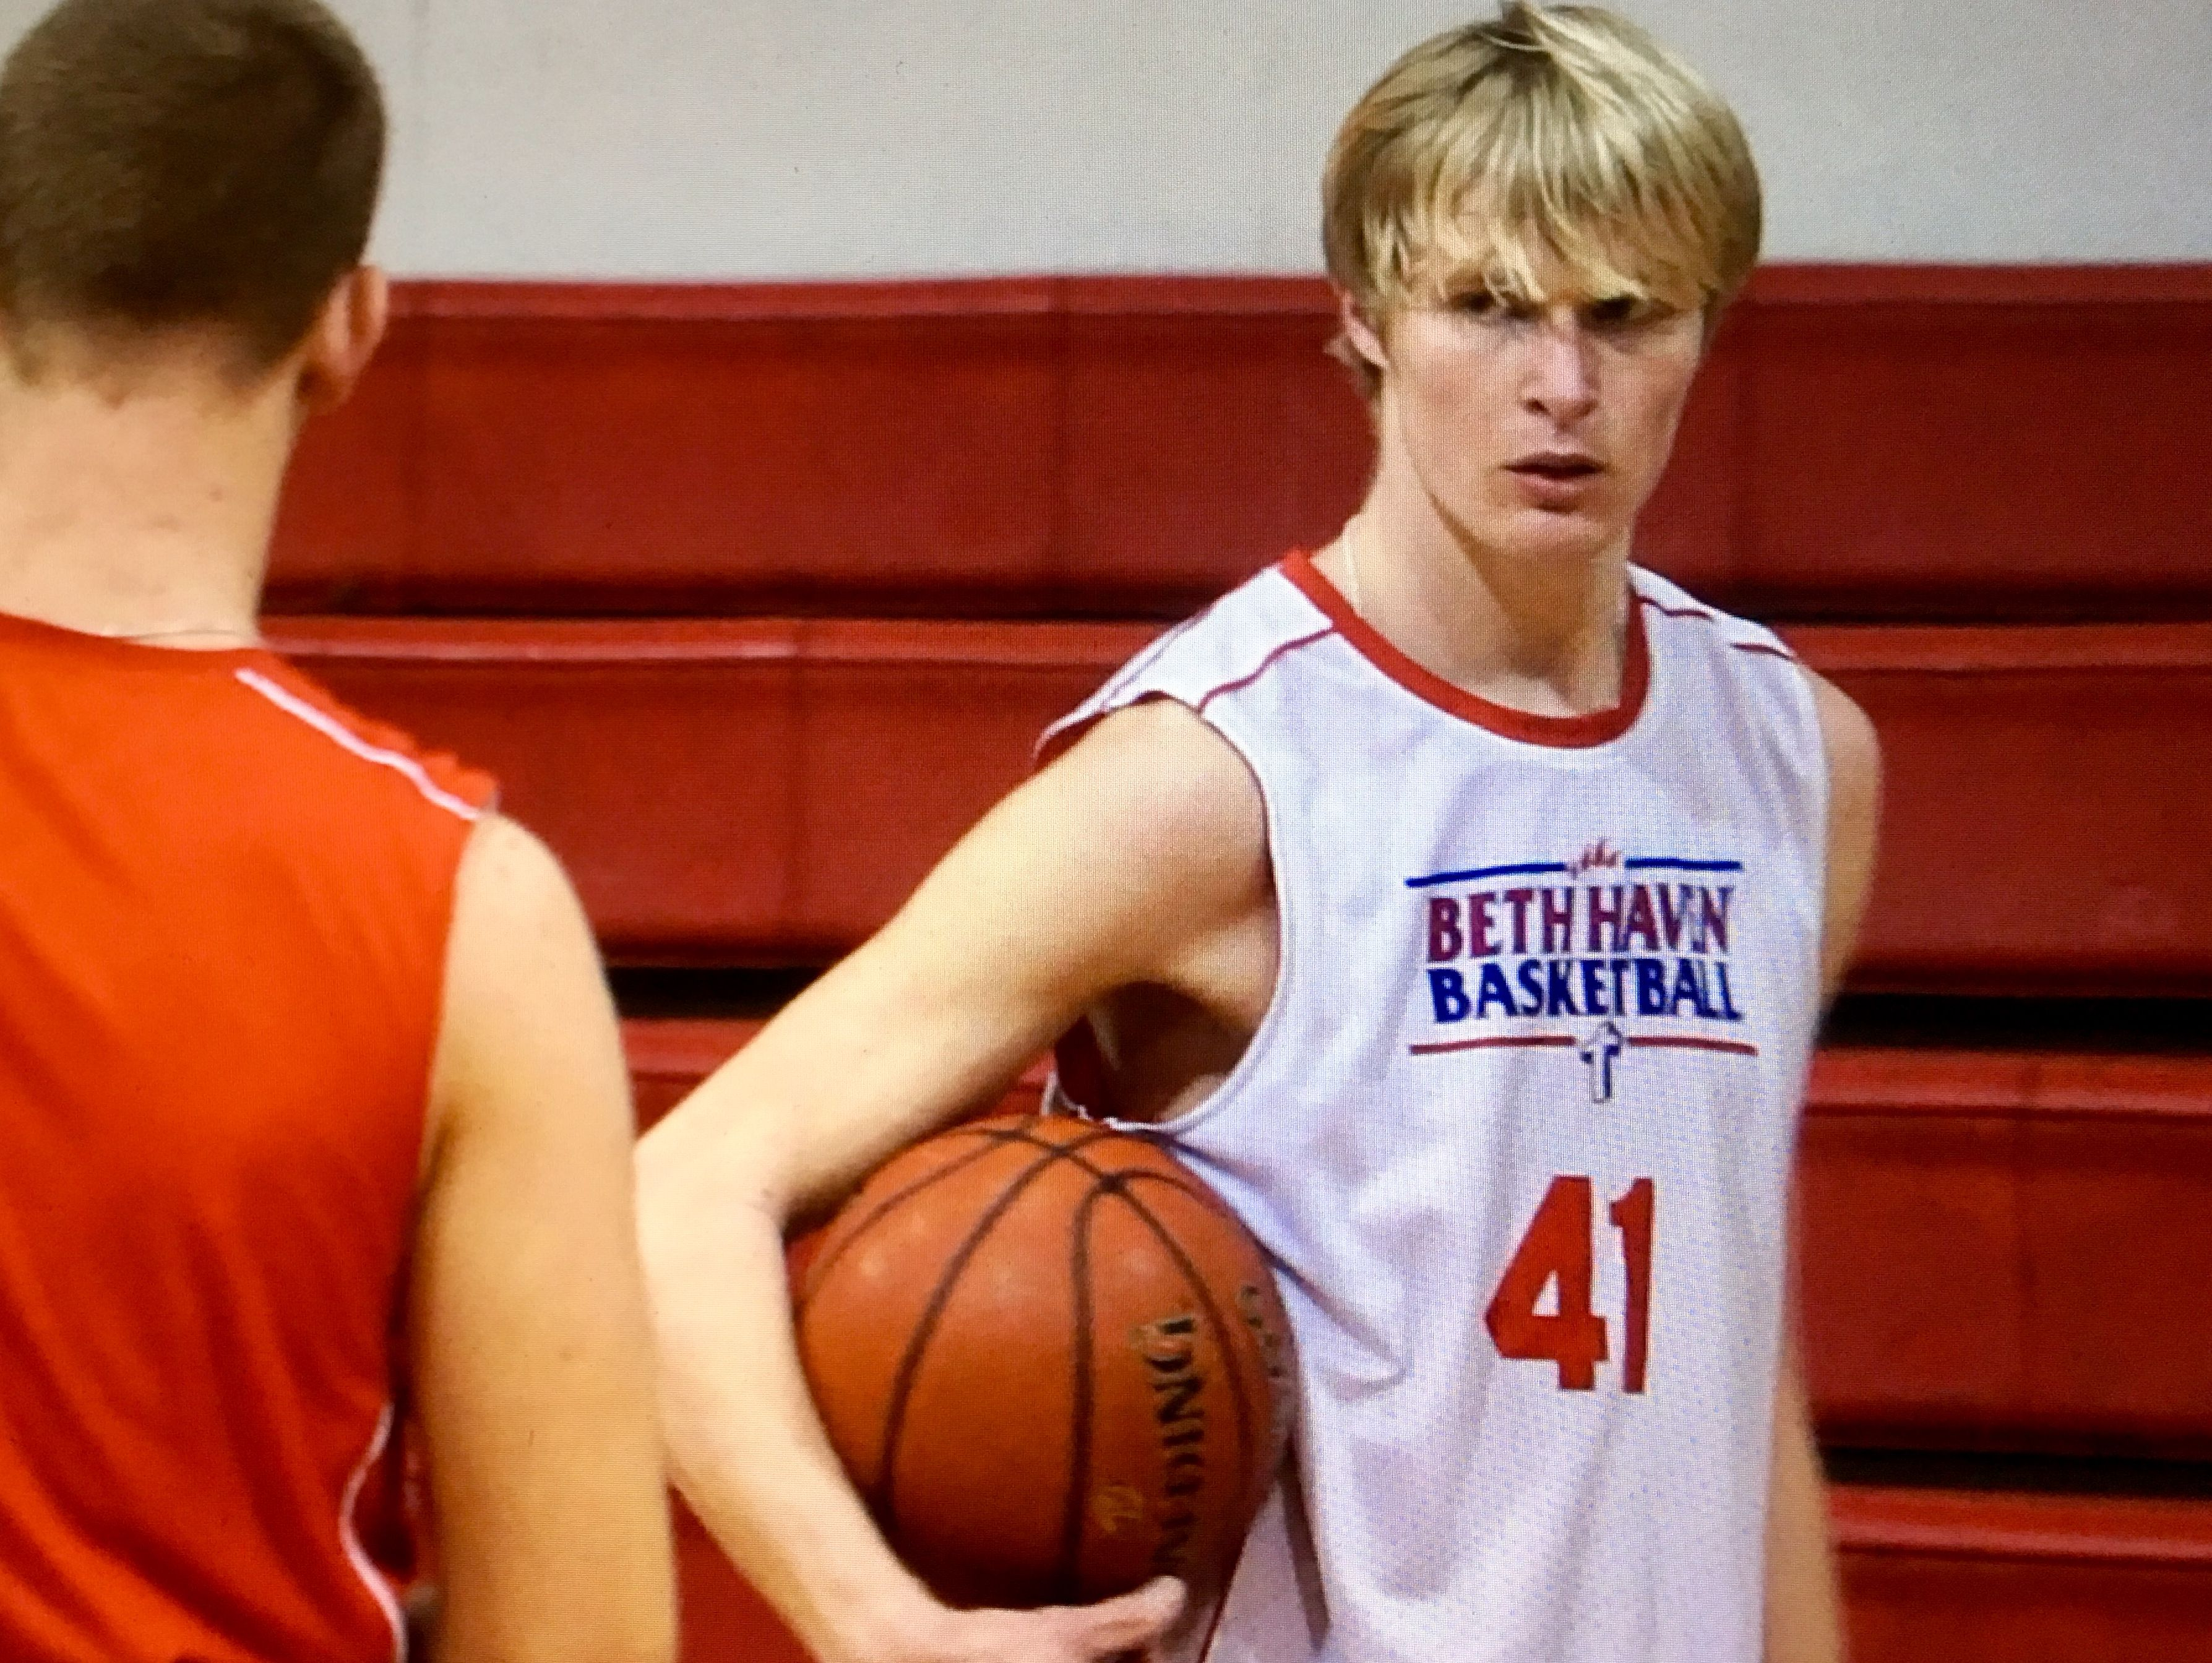 Beth Haven basketball player Cody Mikel.